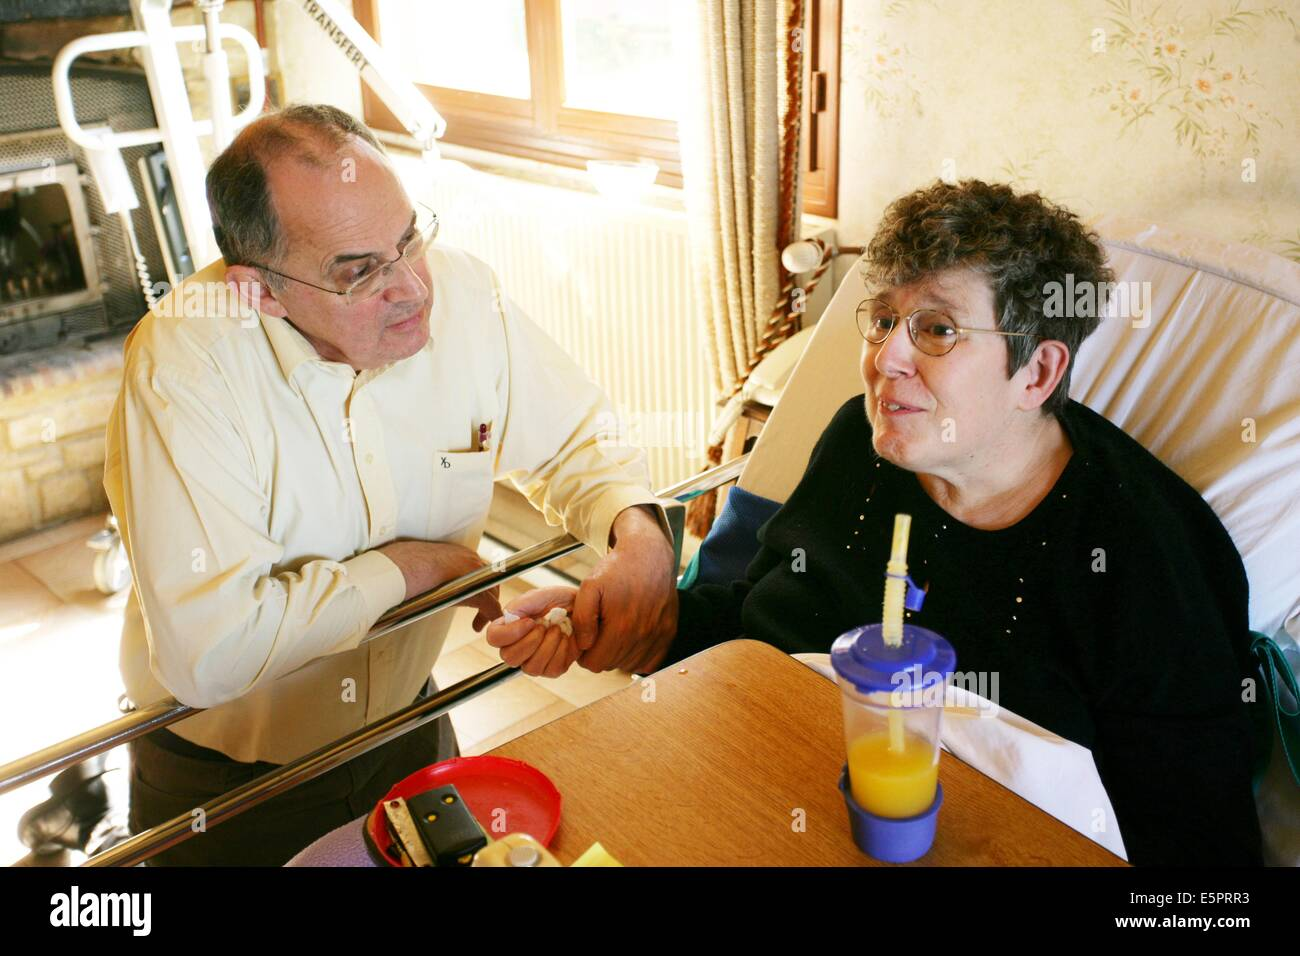 57 year old female patient suffering from multiple sclerosis (MS) receiving the visit of her general practitioner - Stock Image